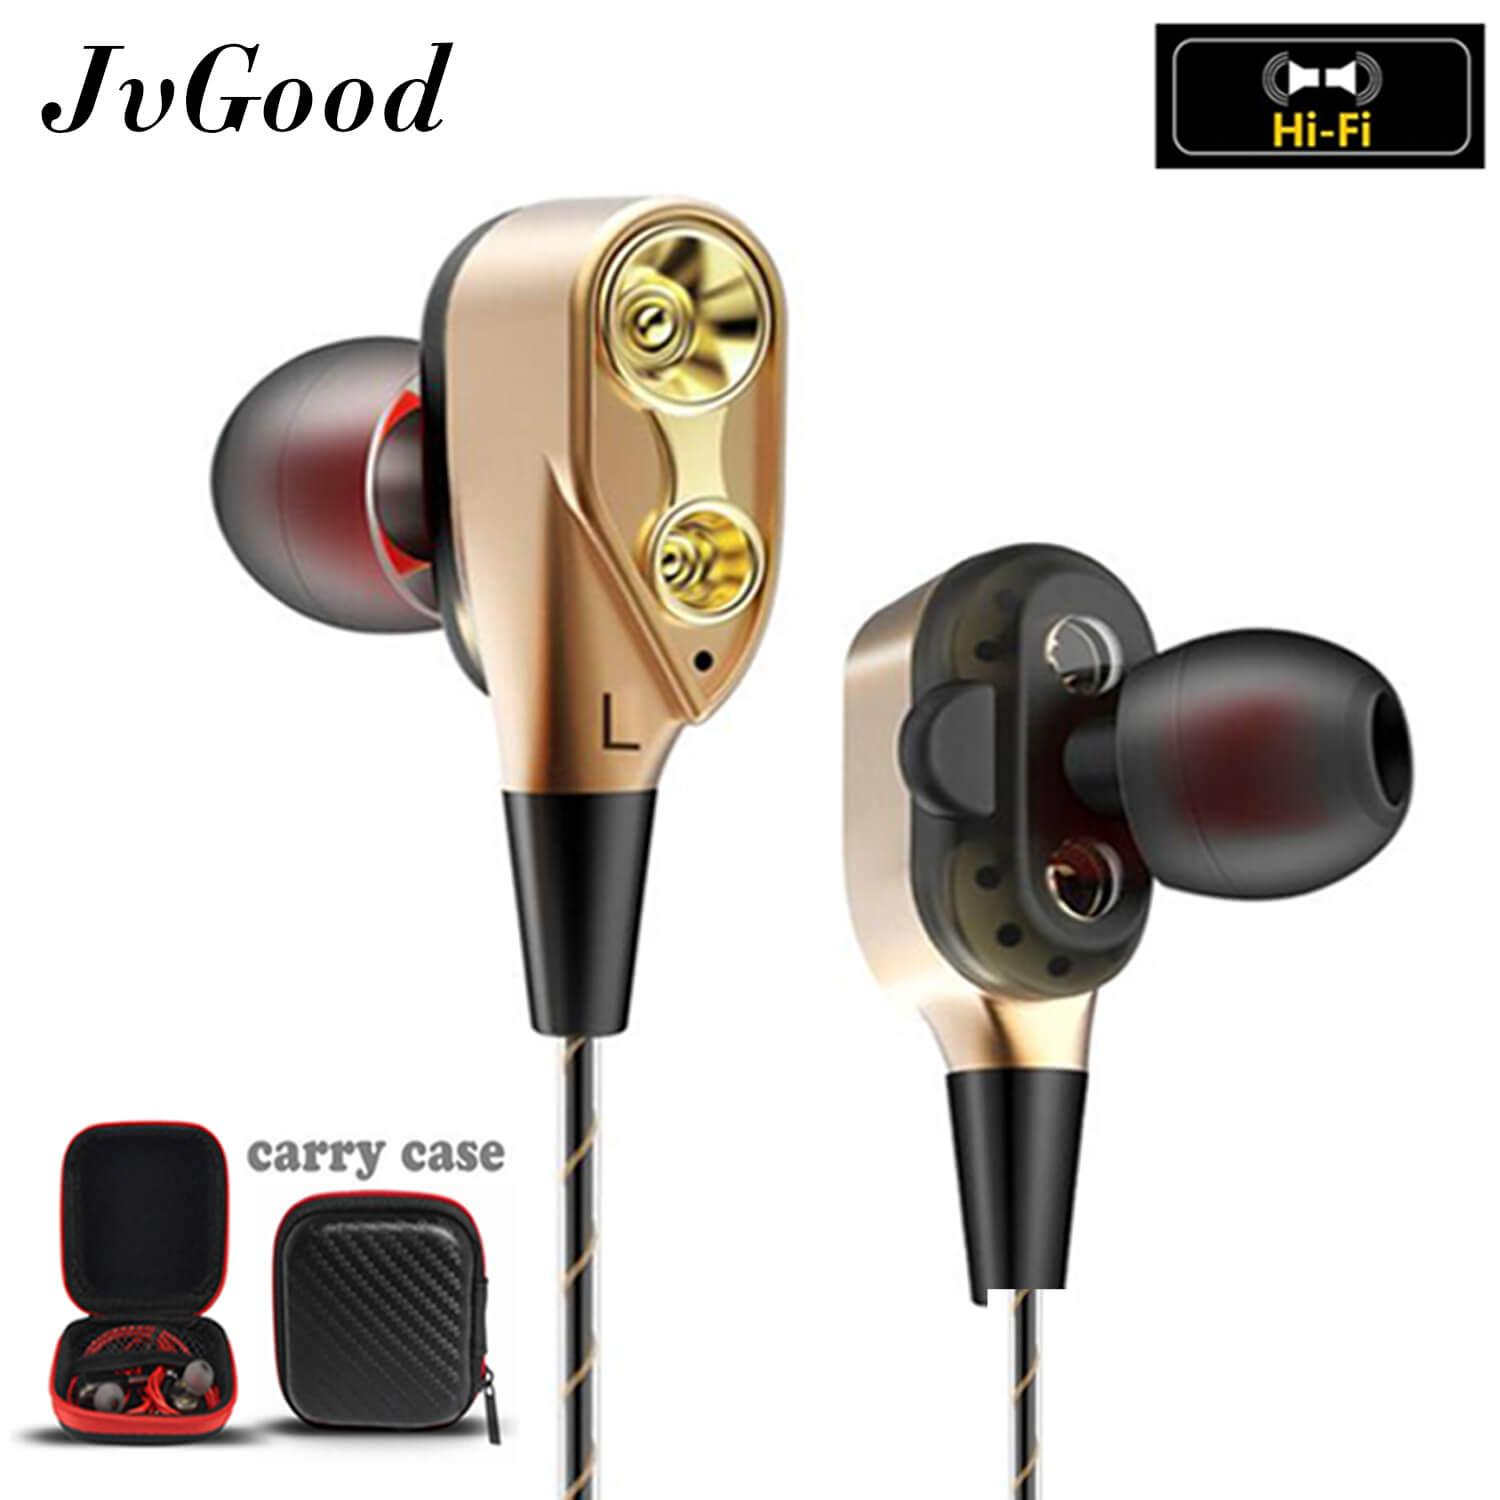 0f9a5ee06a6 JvGood Wired Earbuds In-Ear Stereo Earphones Richer Bass HiFi Stereo Noise  Cancelling Headphones Dual